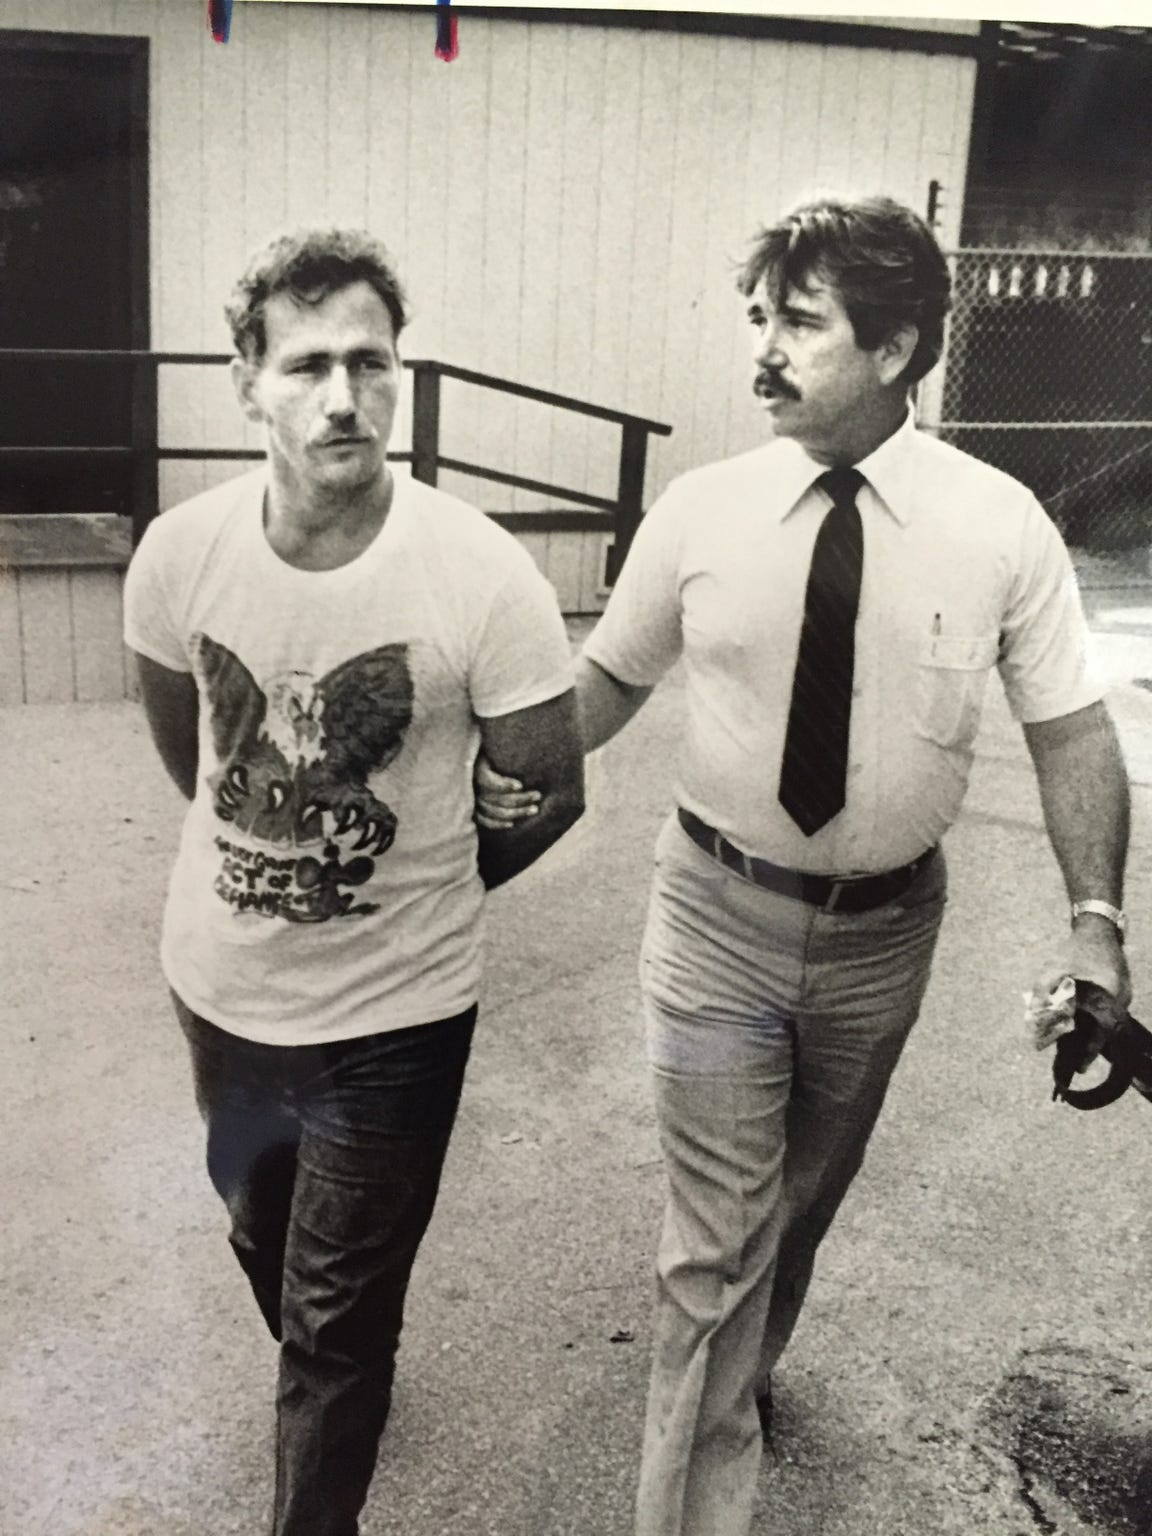 Gary Bennett in a 1983 photo being led away by Palm